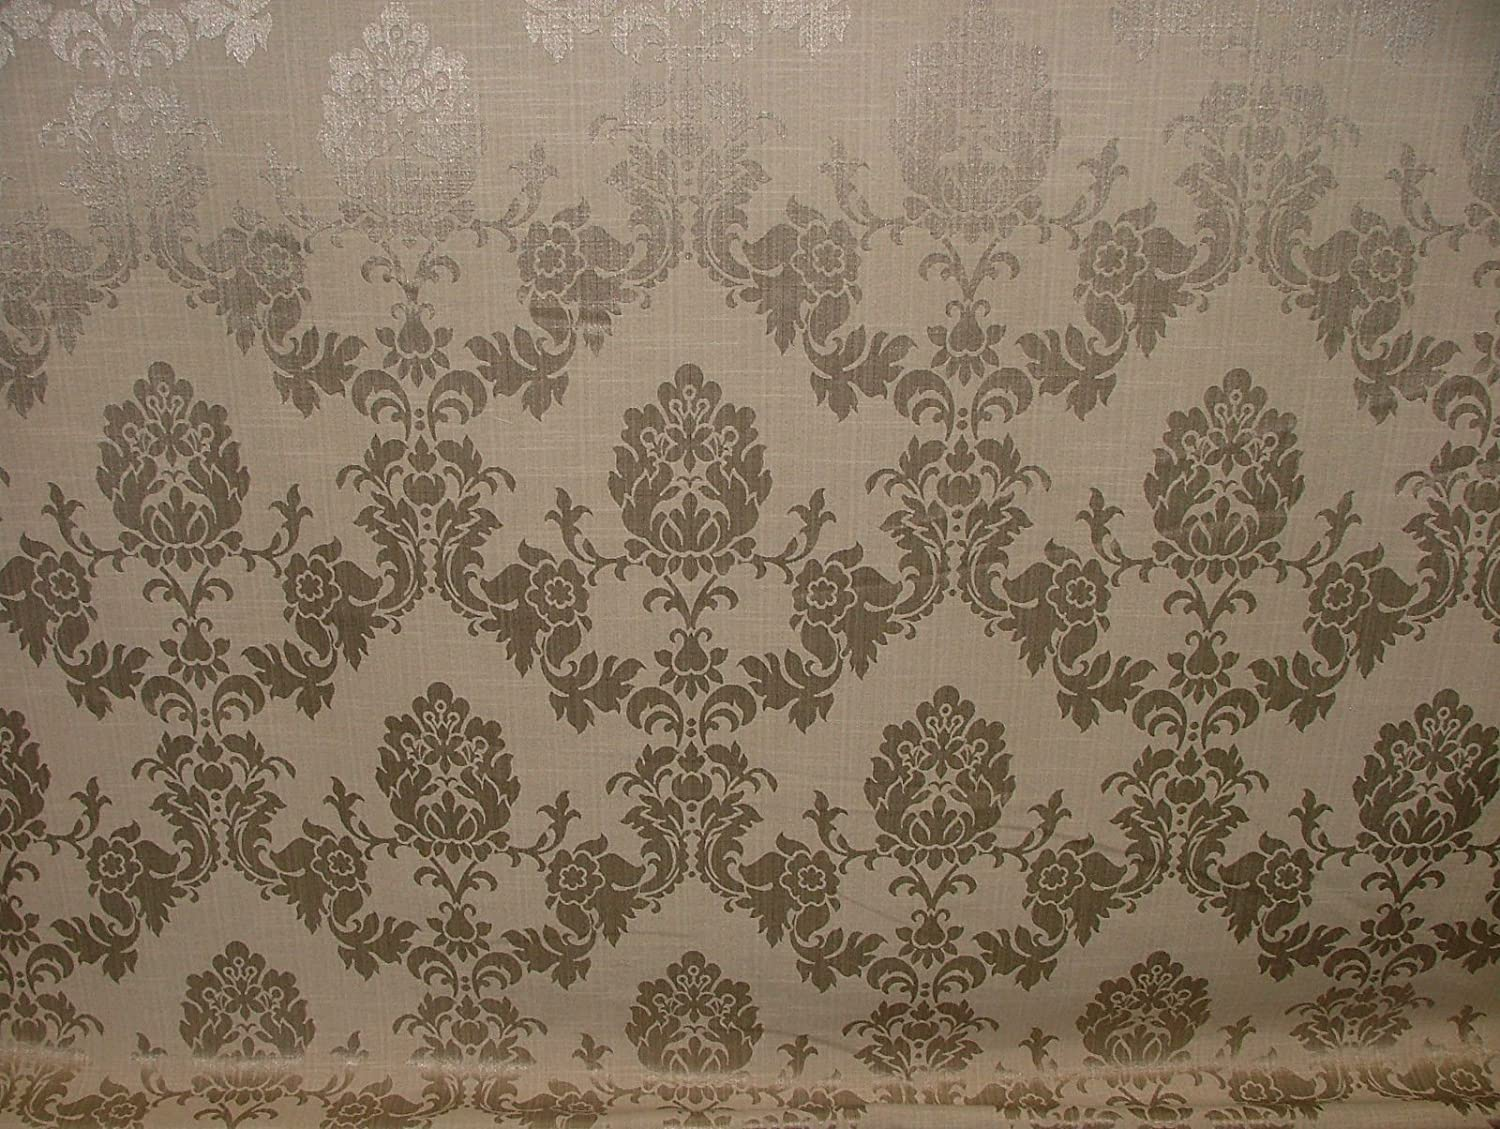 BROWN DUCK EGG Designer Brocade Damask Fabric Curtains Upholstery Cushion Blinds